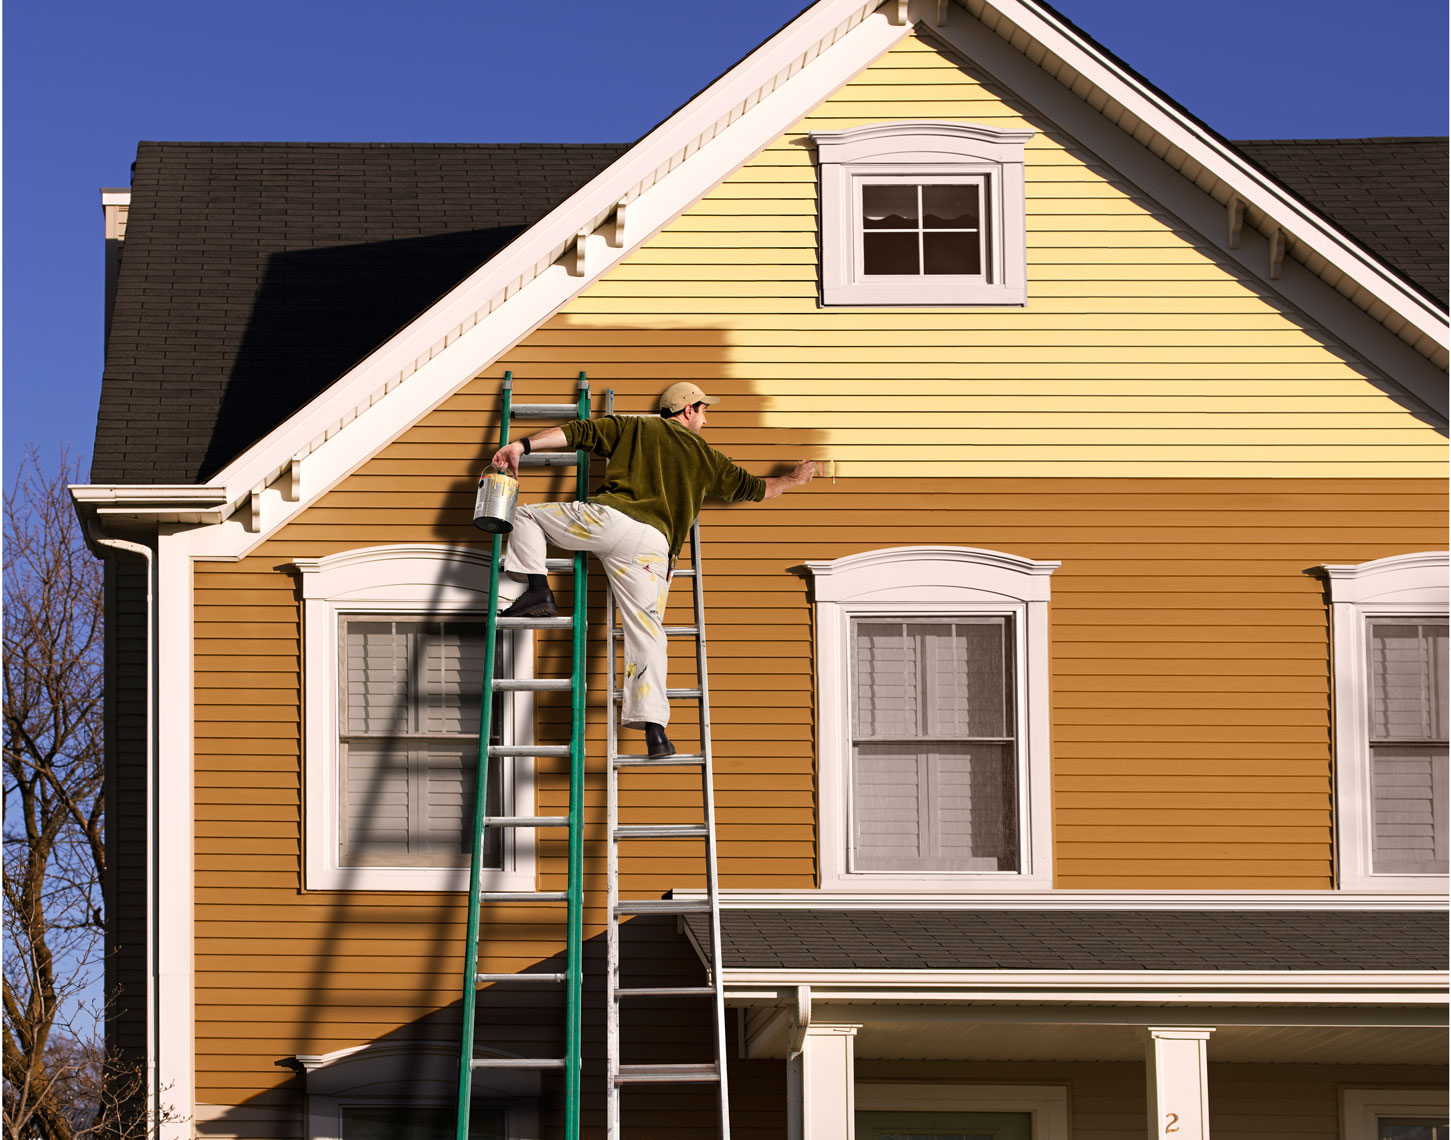 Man on a ladder painting a house